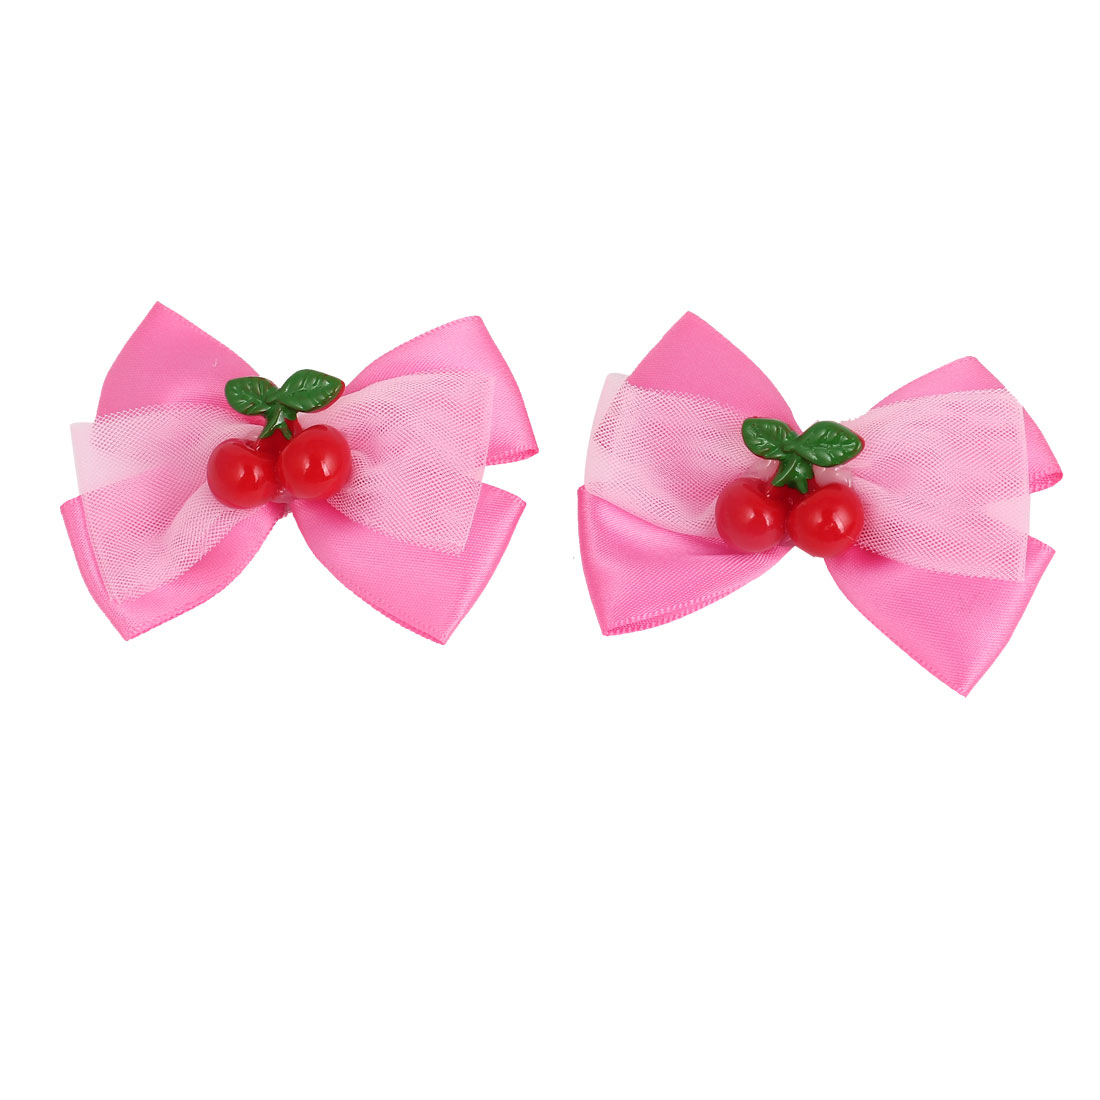 2 Pcs Dark Pink Nylon Organza Bowknot Two Cherries Decor Alligator Hair Clip for Girl